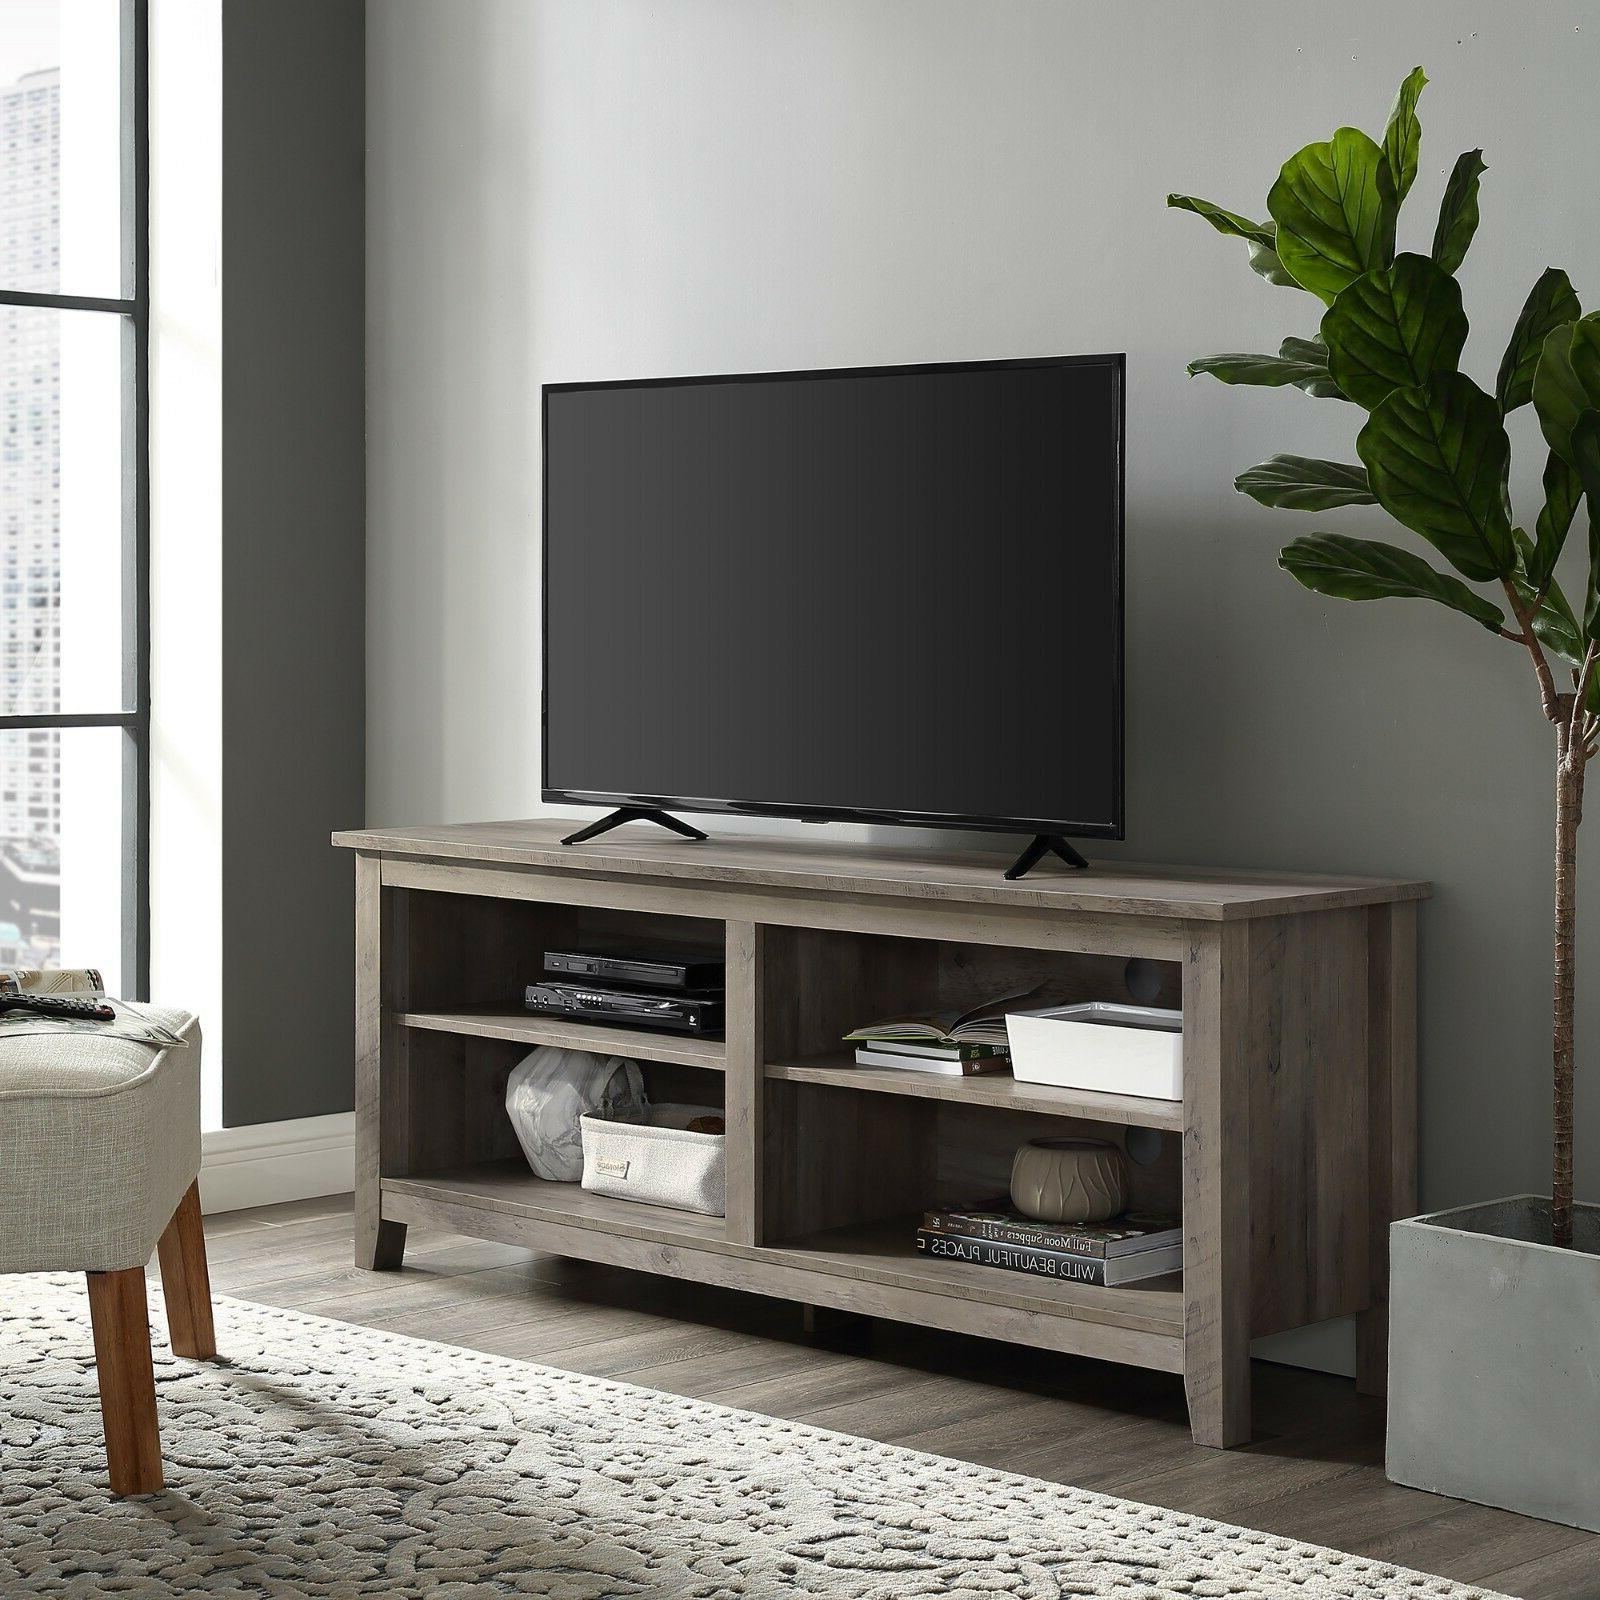 """TV Stand 60"""" Table Wood Rustic Storage Console Living Room M"""